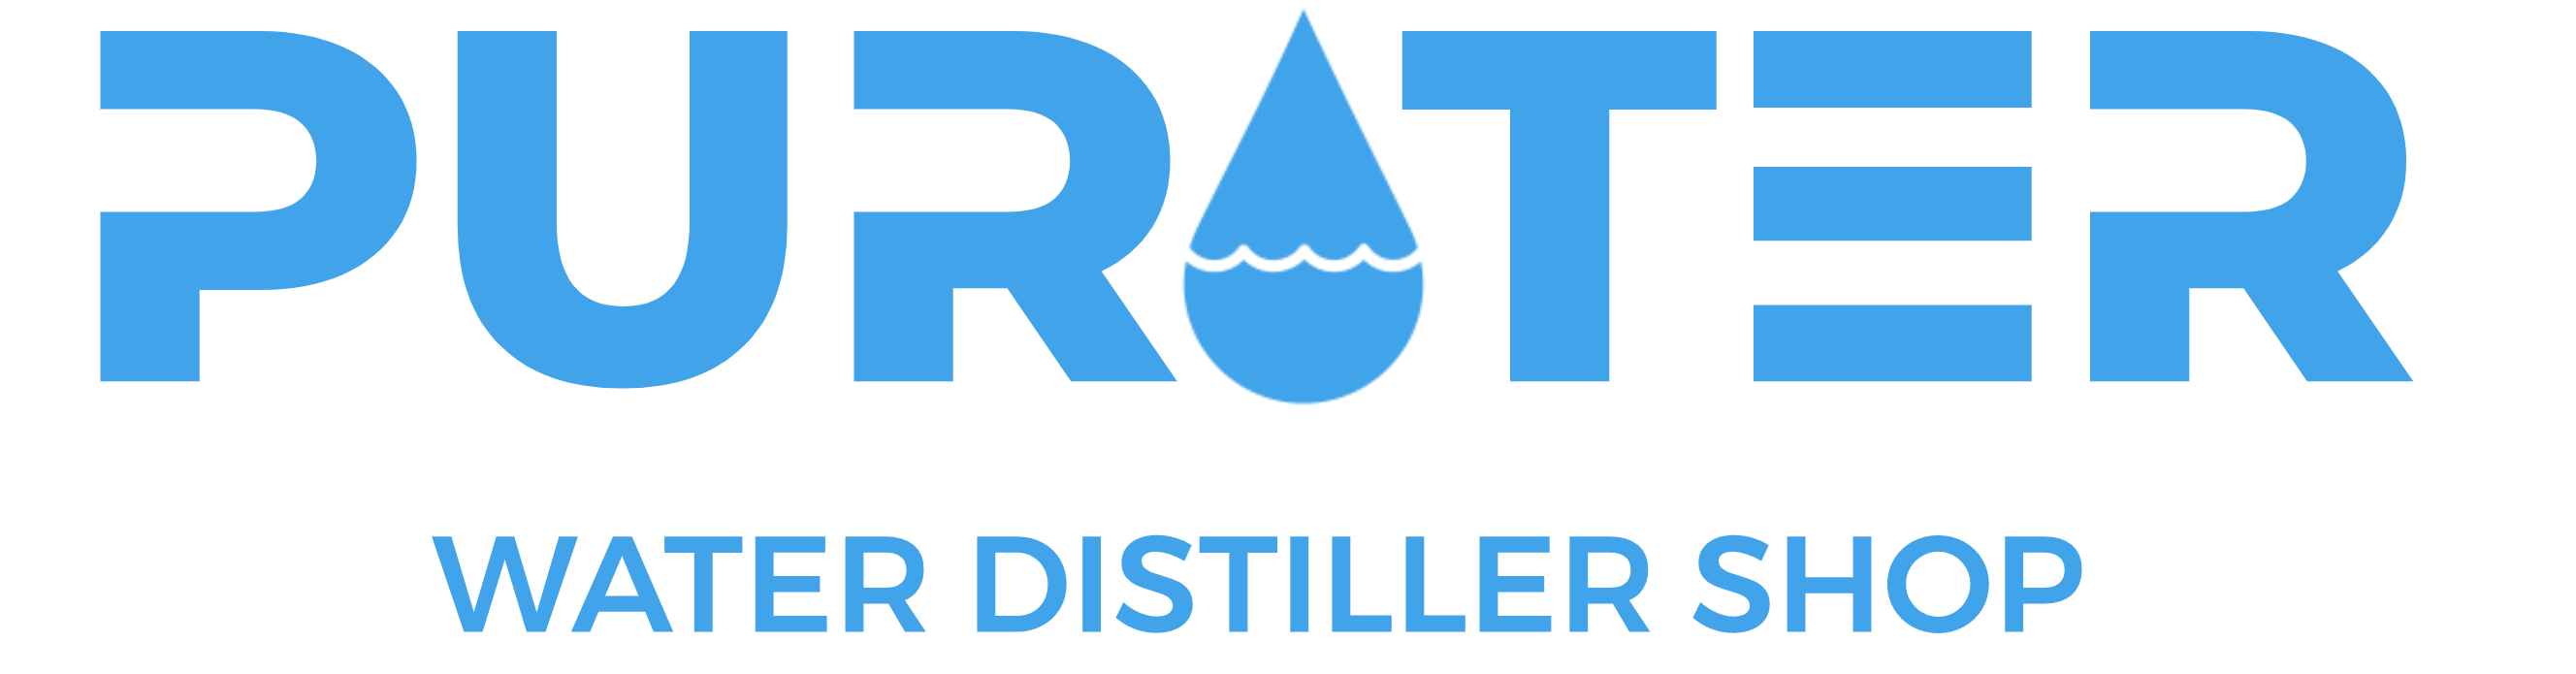 Water Distiller Shop by Purater